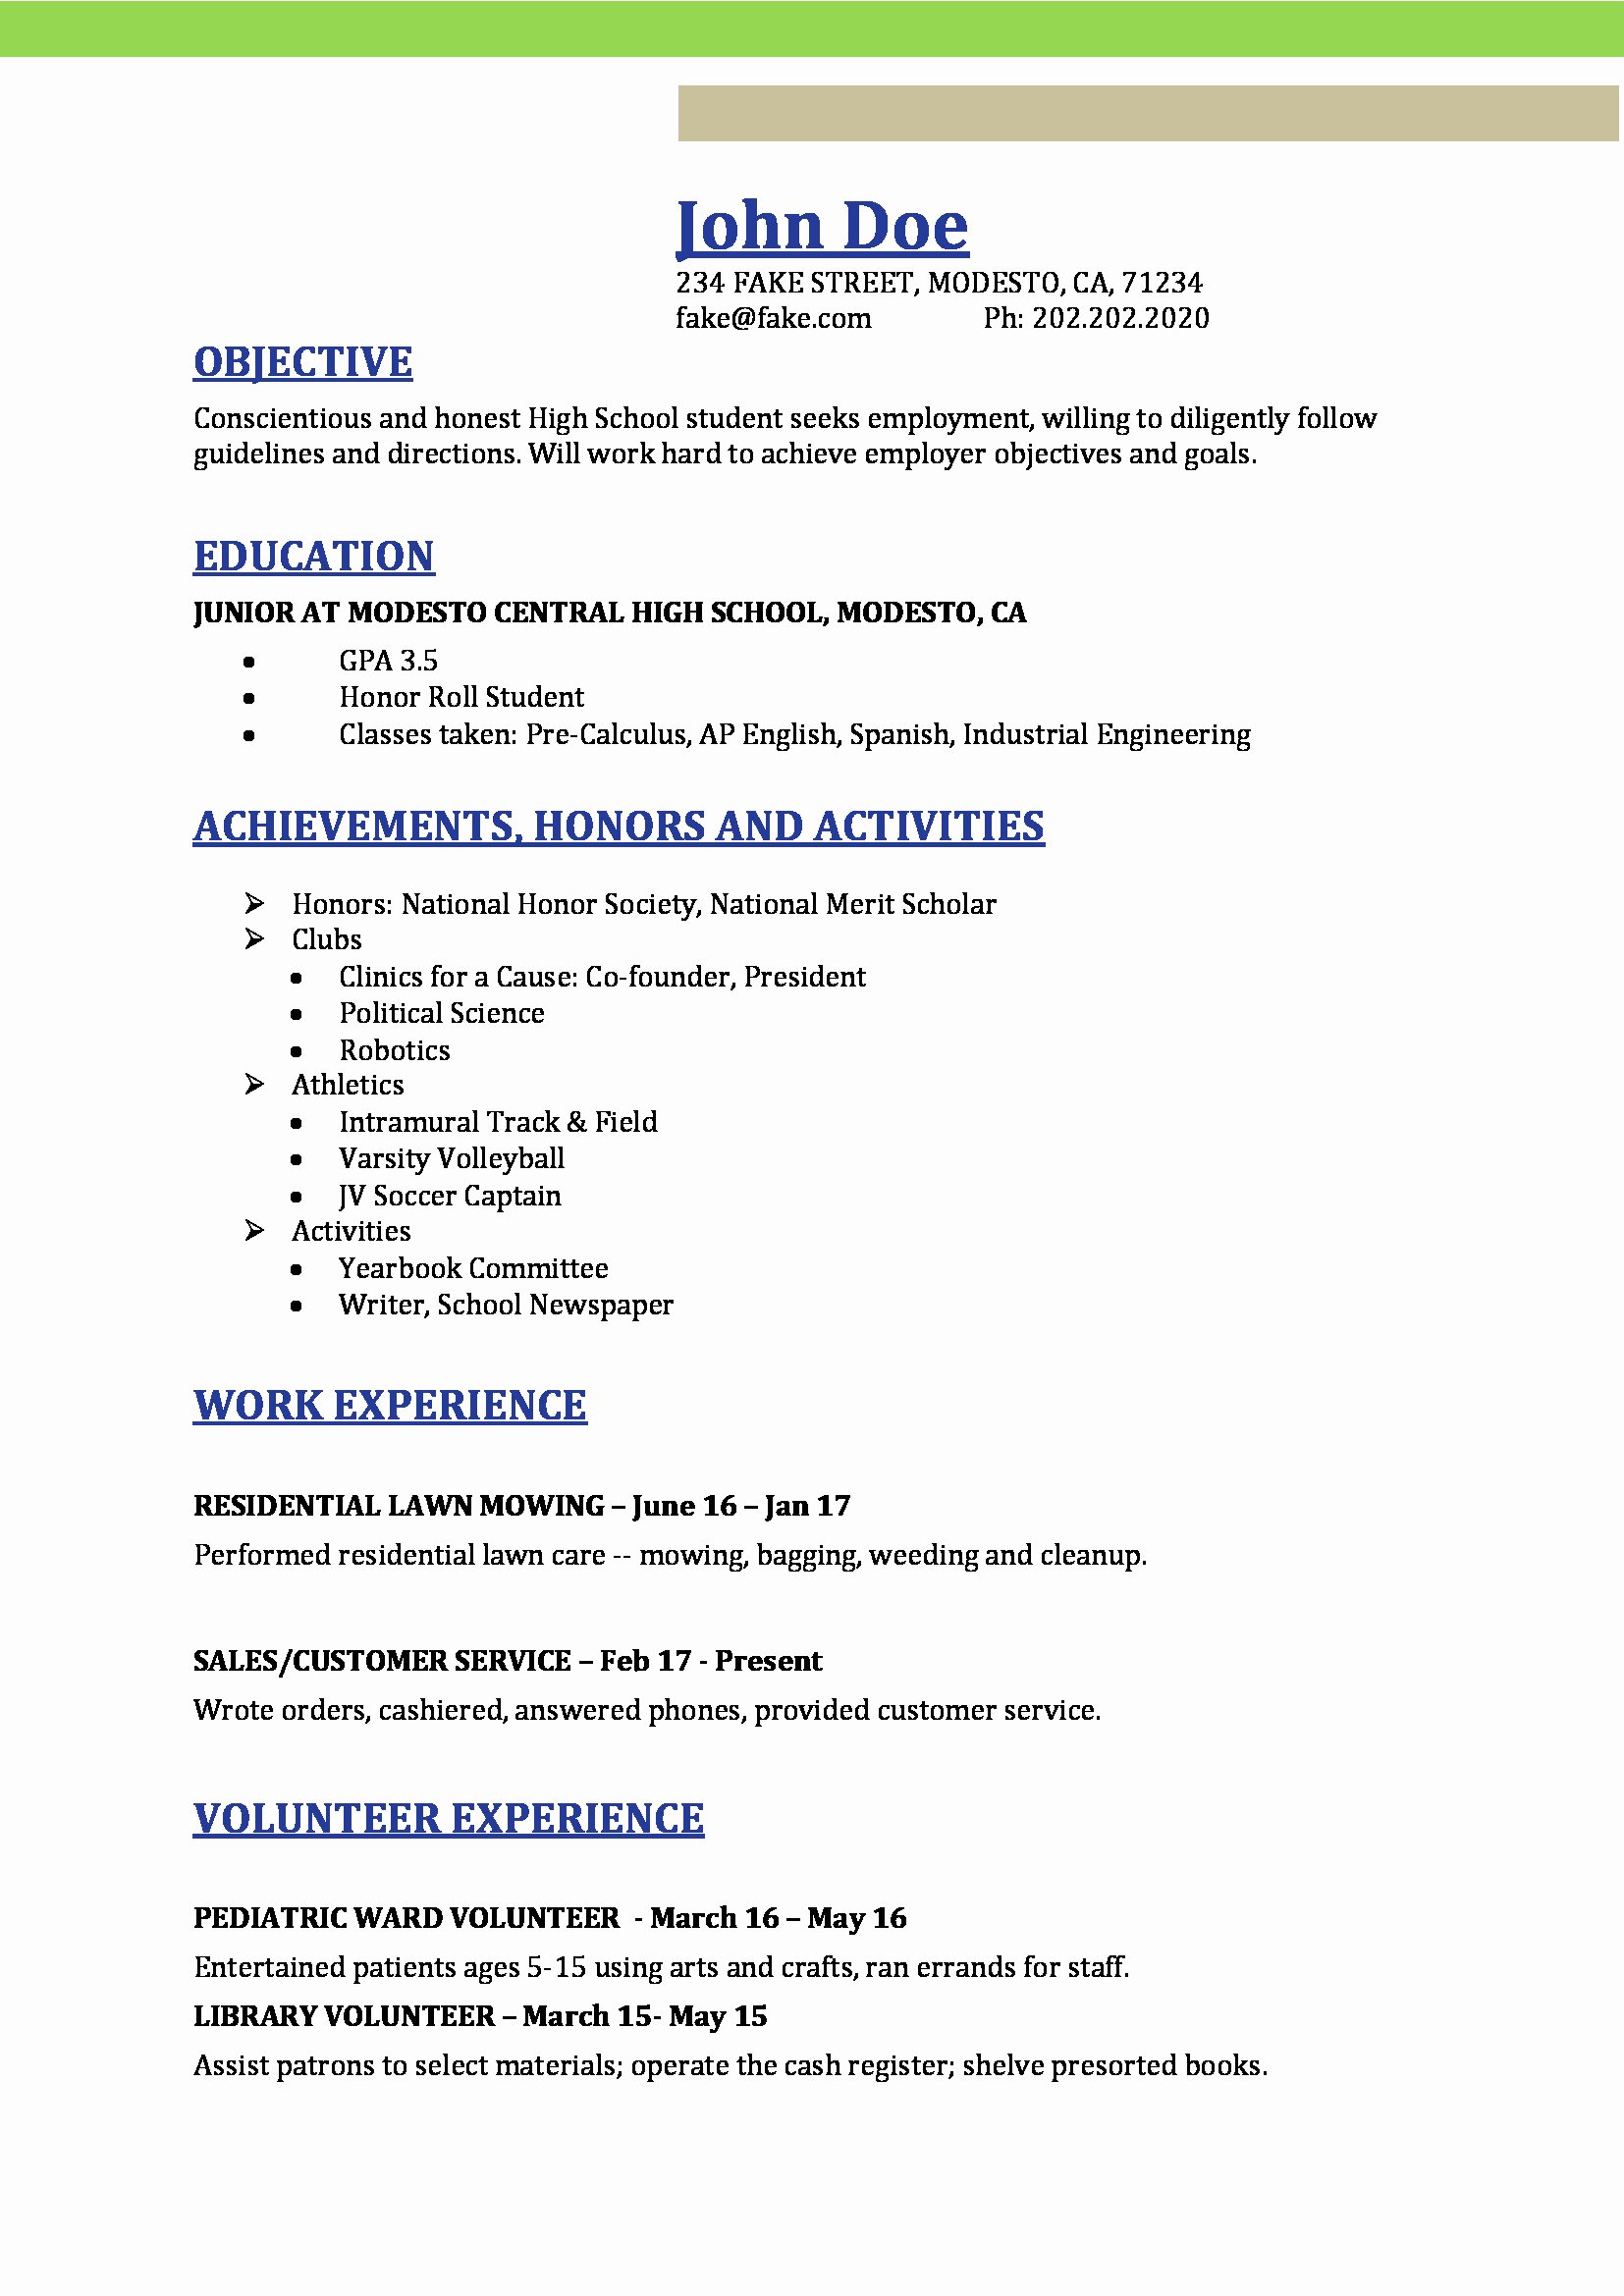 Resumes for High School Students Luxury High School Resume Resumes Perfect for High School Students